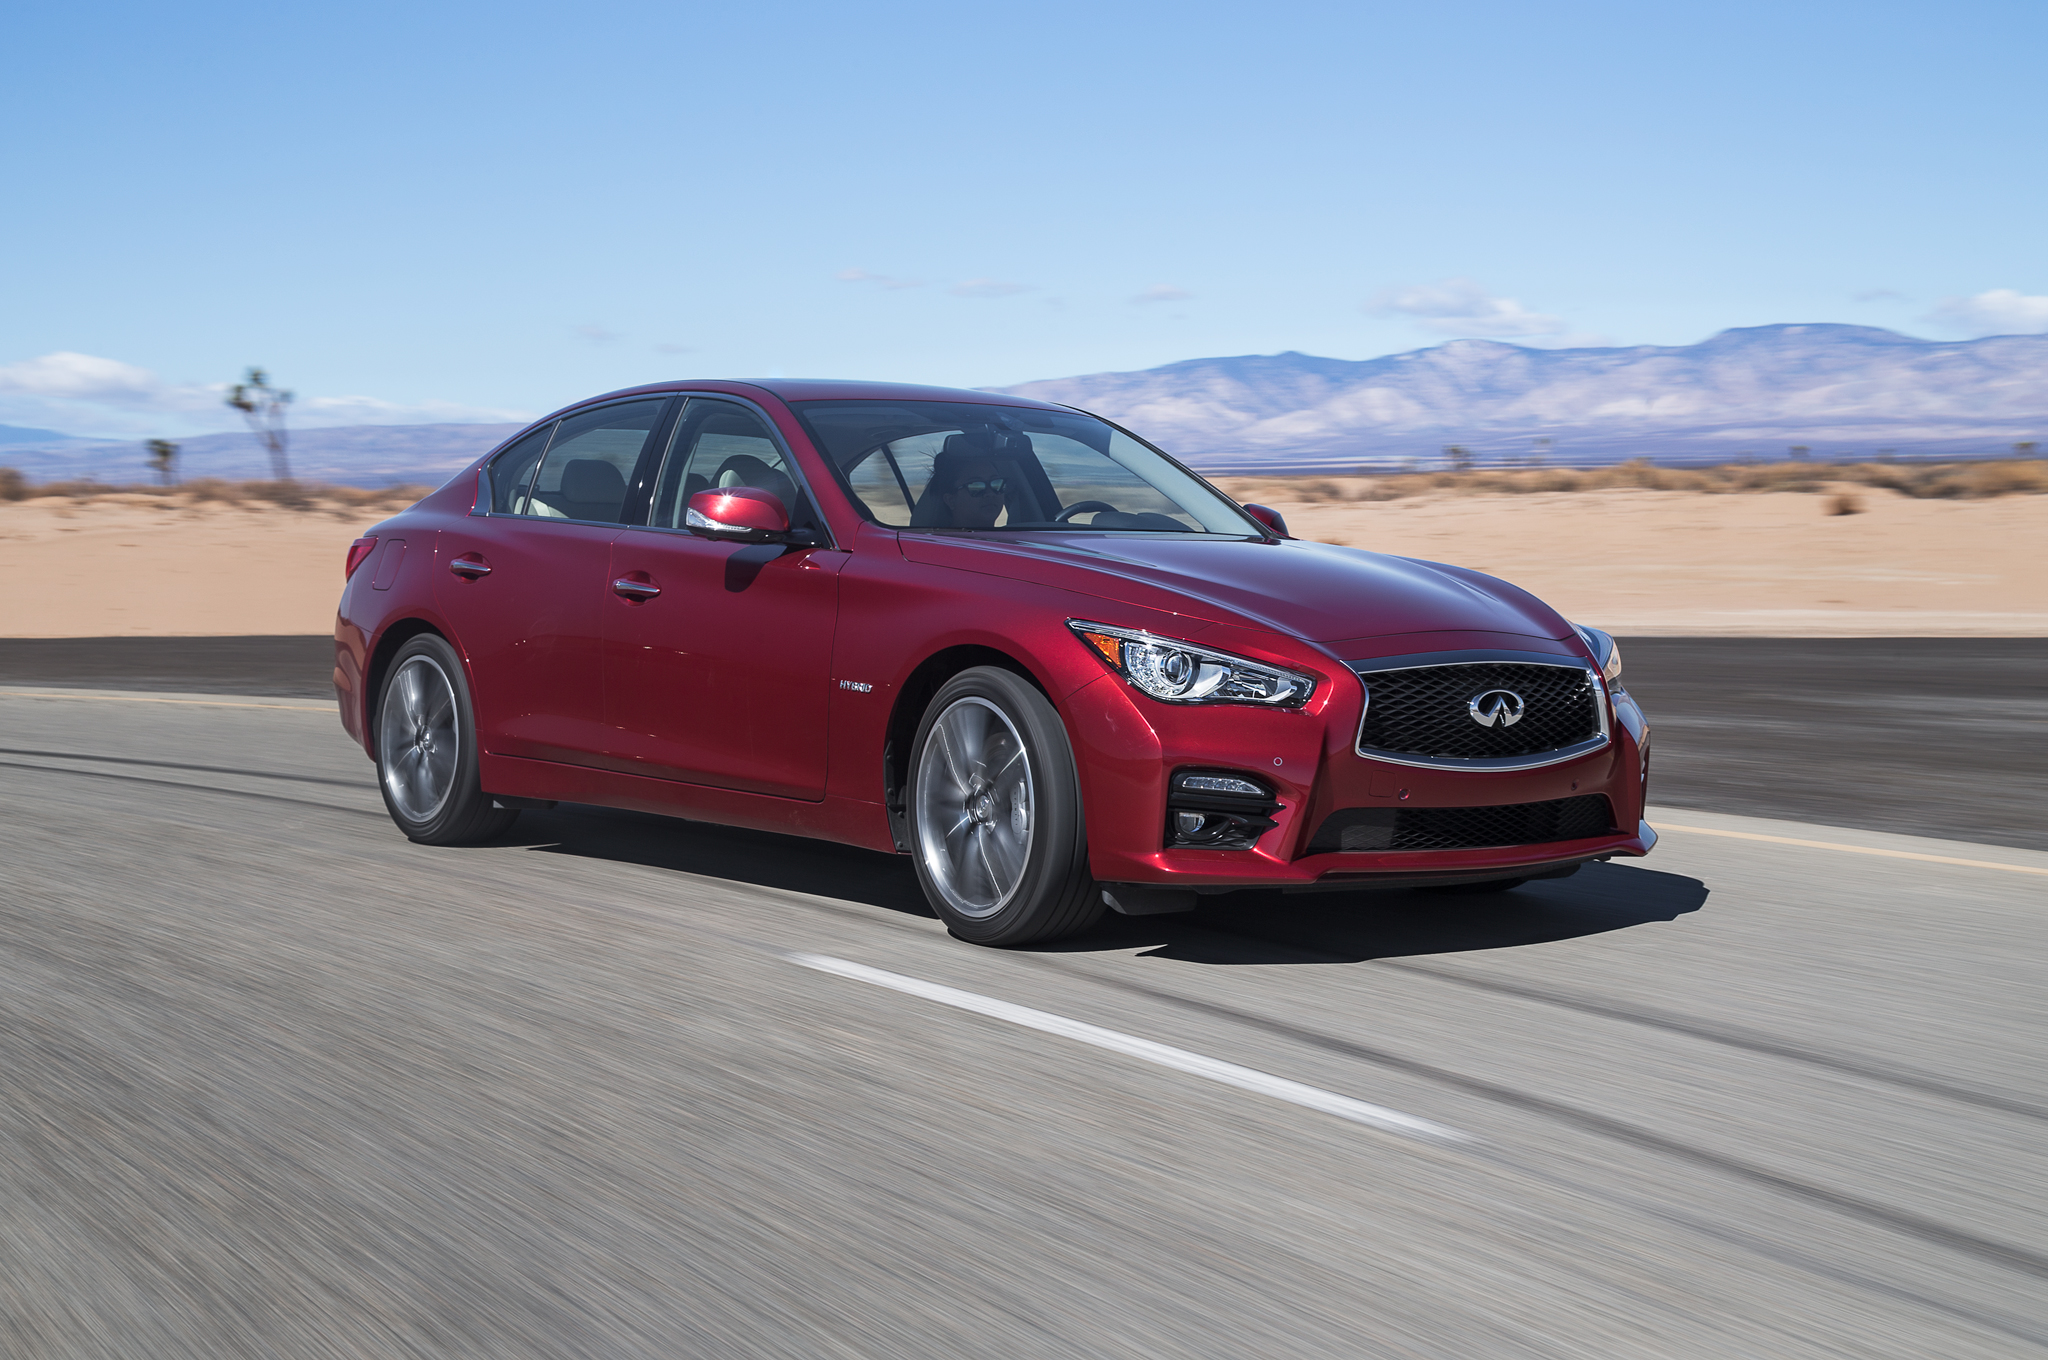 1d5aa7f4520 2014 Motor Trend Car of the Year: Contenders and Finalists - Motor Trend